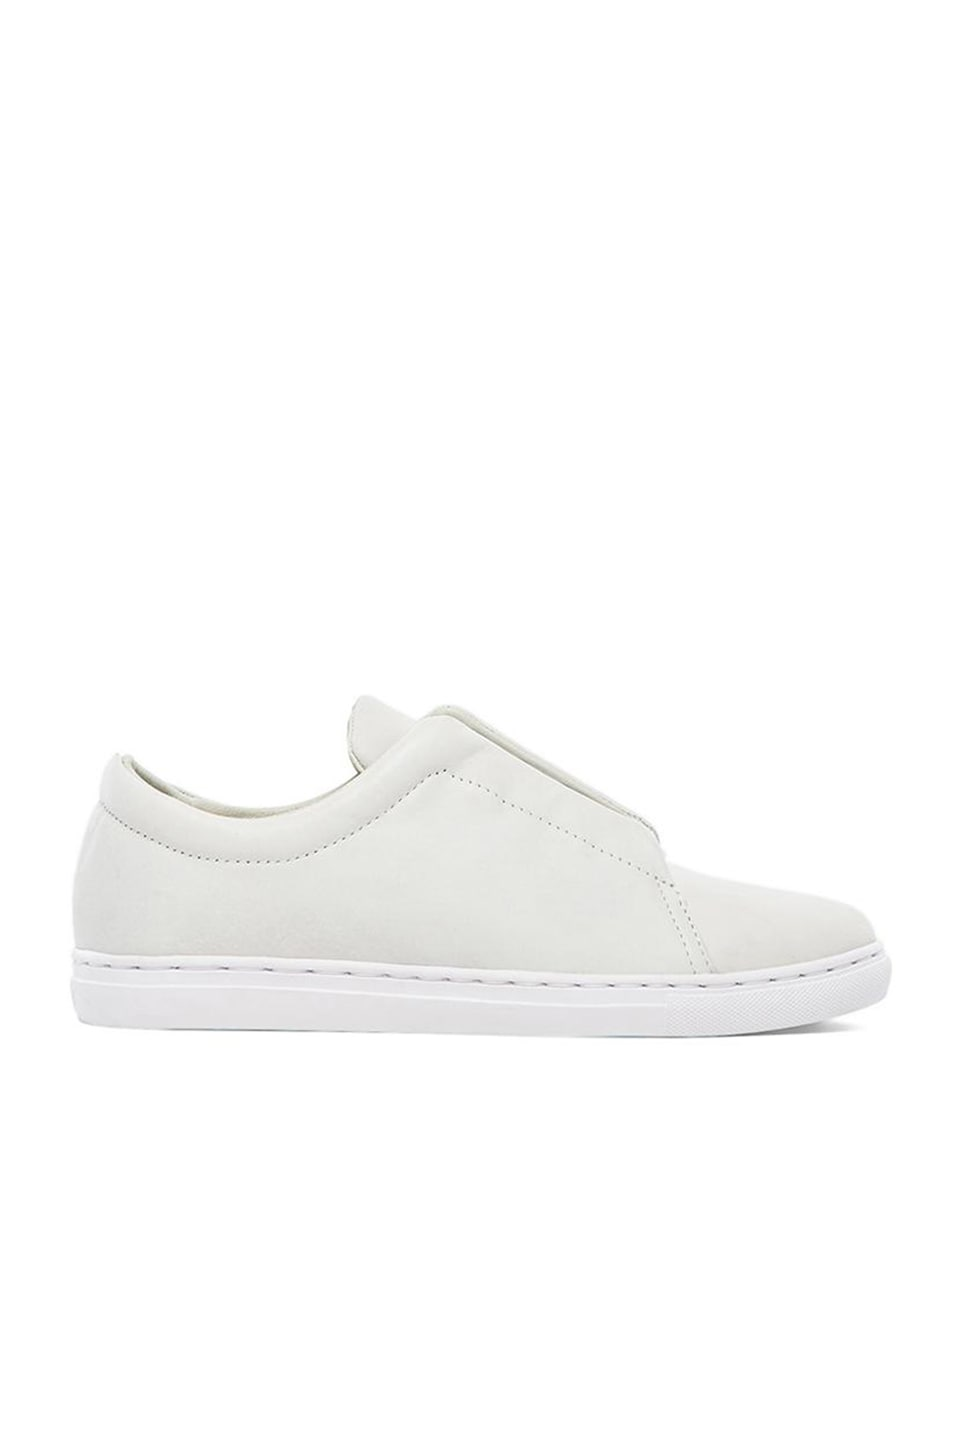 Creative Recreation Turino in White